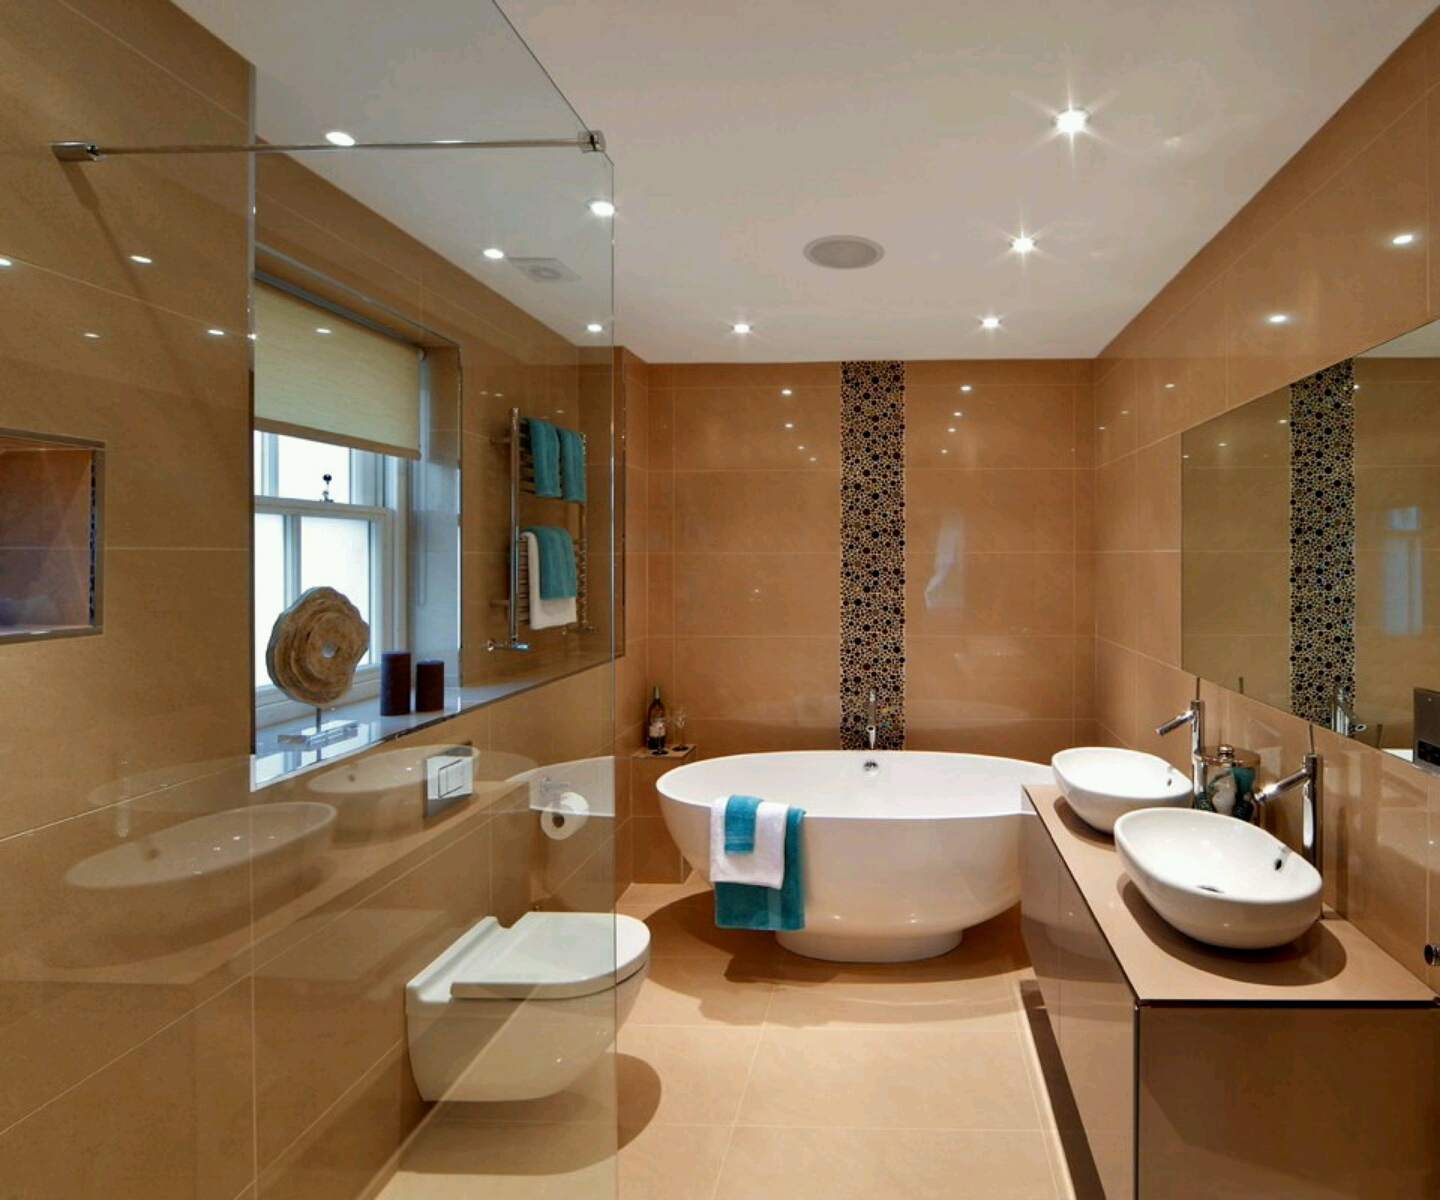 Bathroom Design Ideas Images stunning 50+ custom bathroom design design ideas of 46 luxury